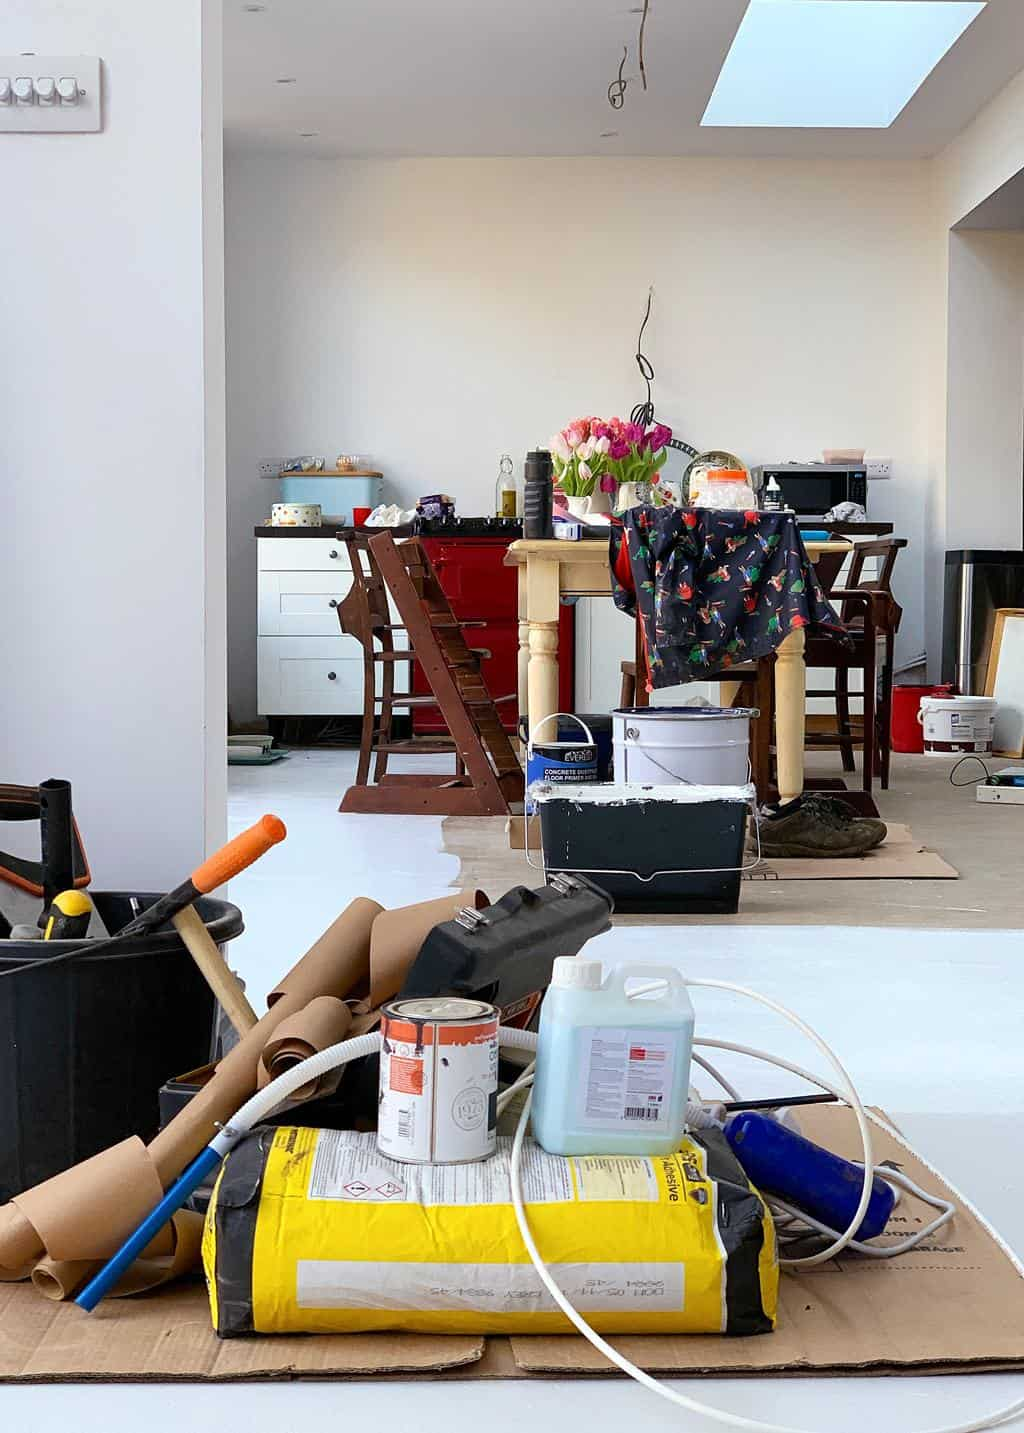 Kitchen organisation tips when you're renovating